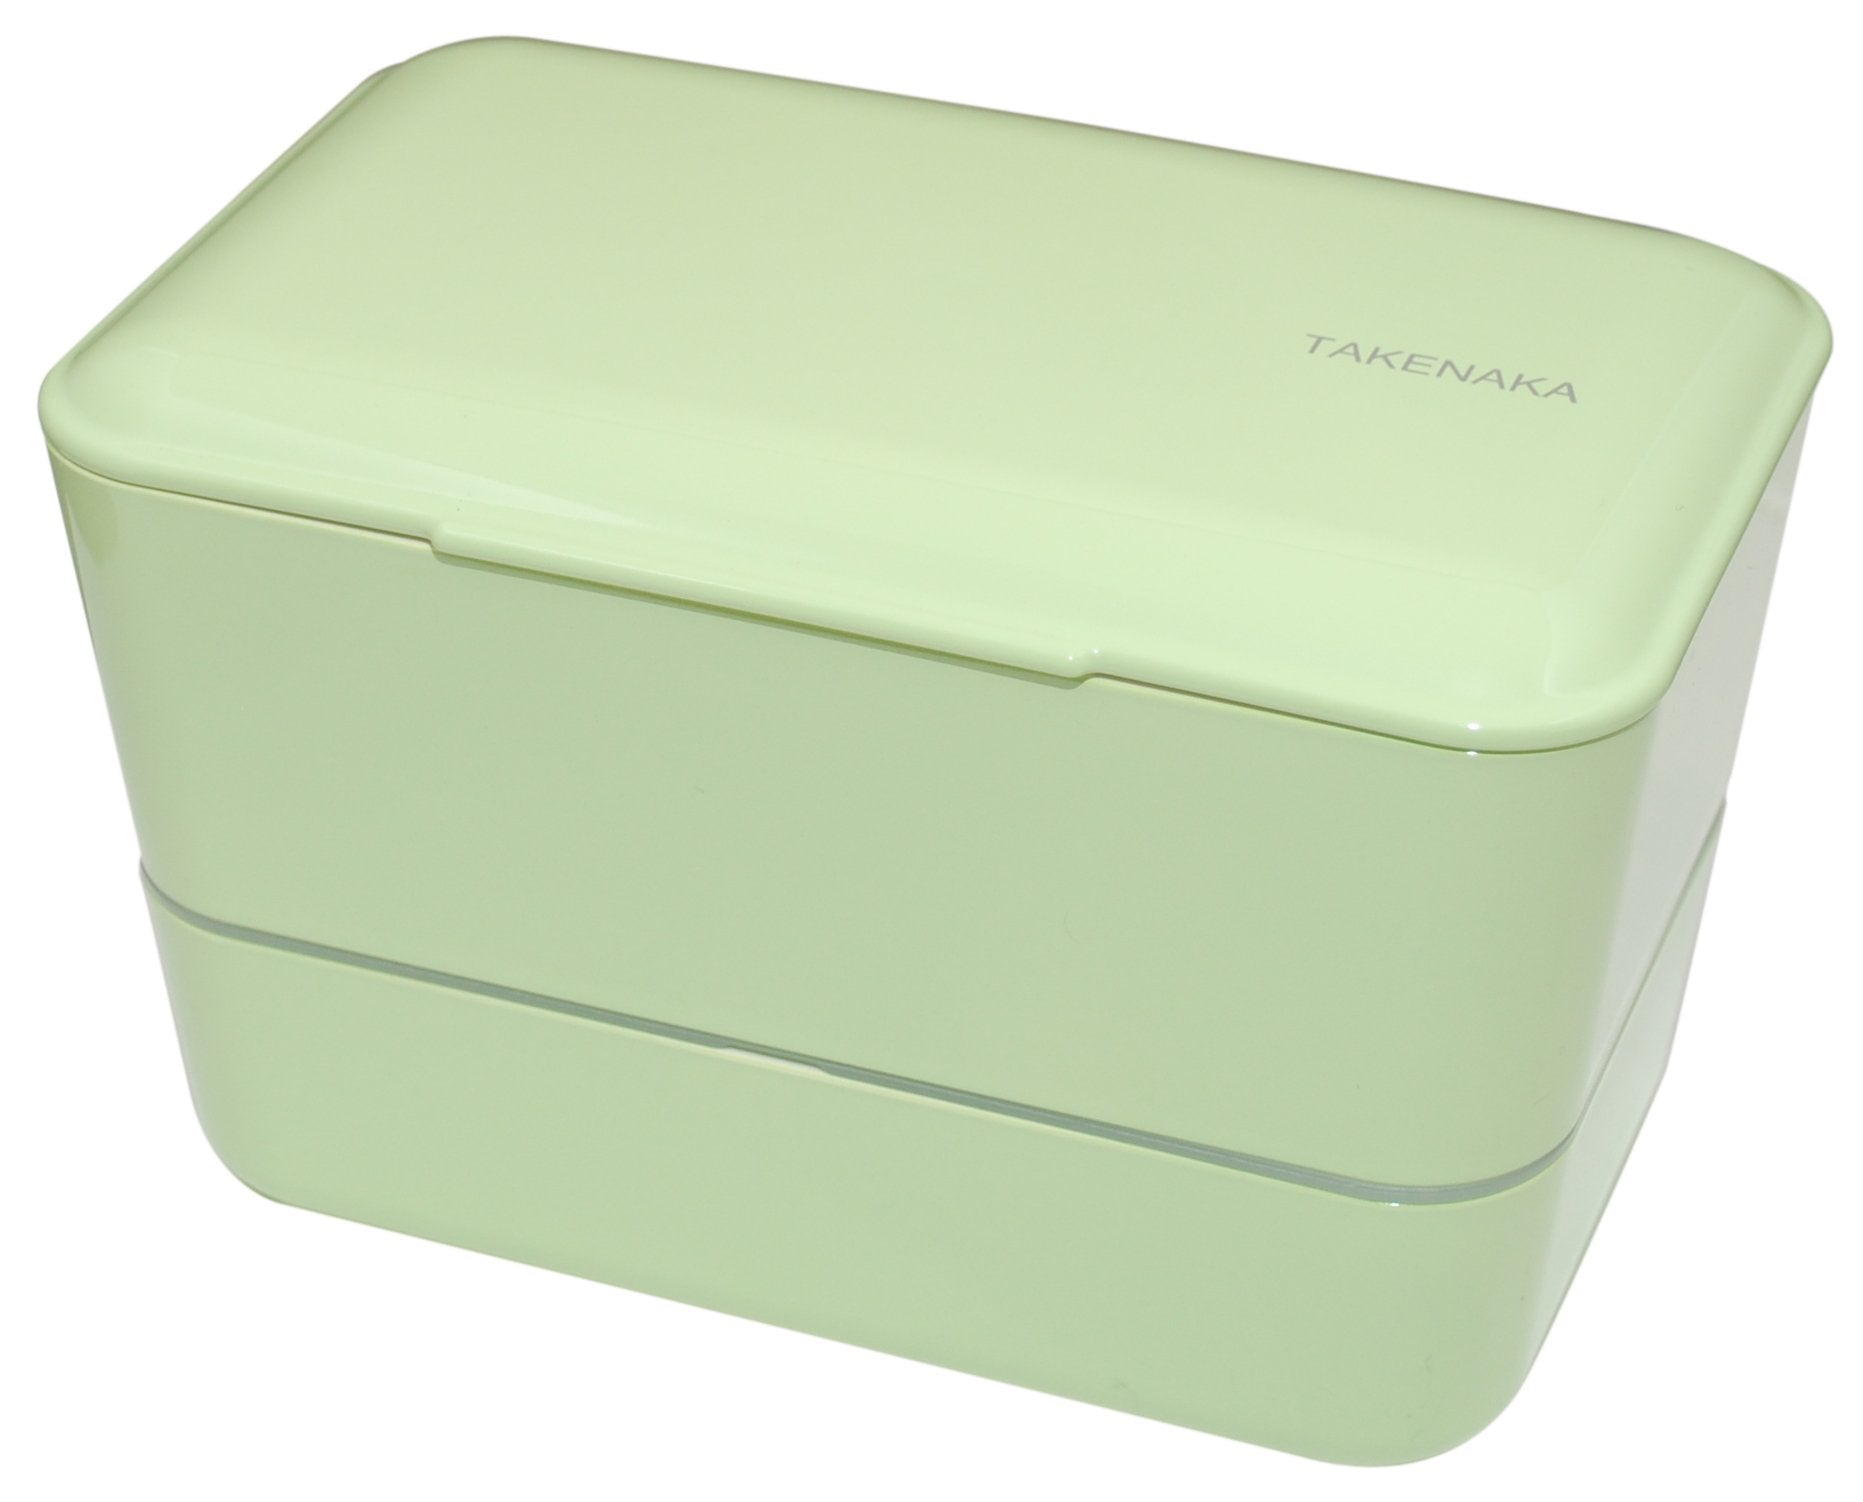 Expanded Double Bento Box | Pistachio Green by Takenaka - Bento&co Japanese Bento Lunch Boxes and Kitchenware Specialists